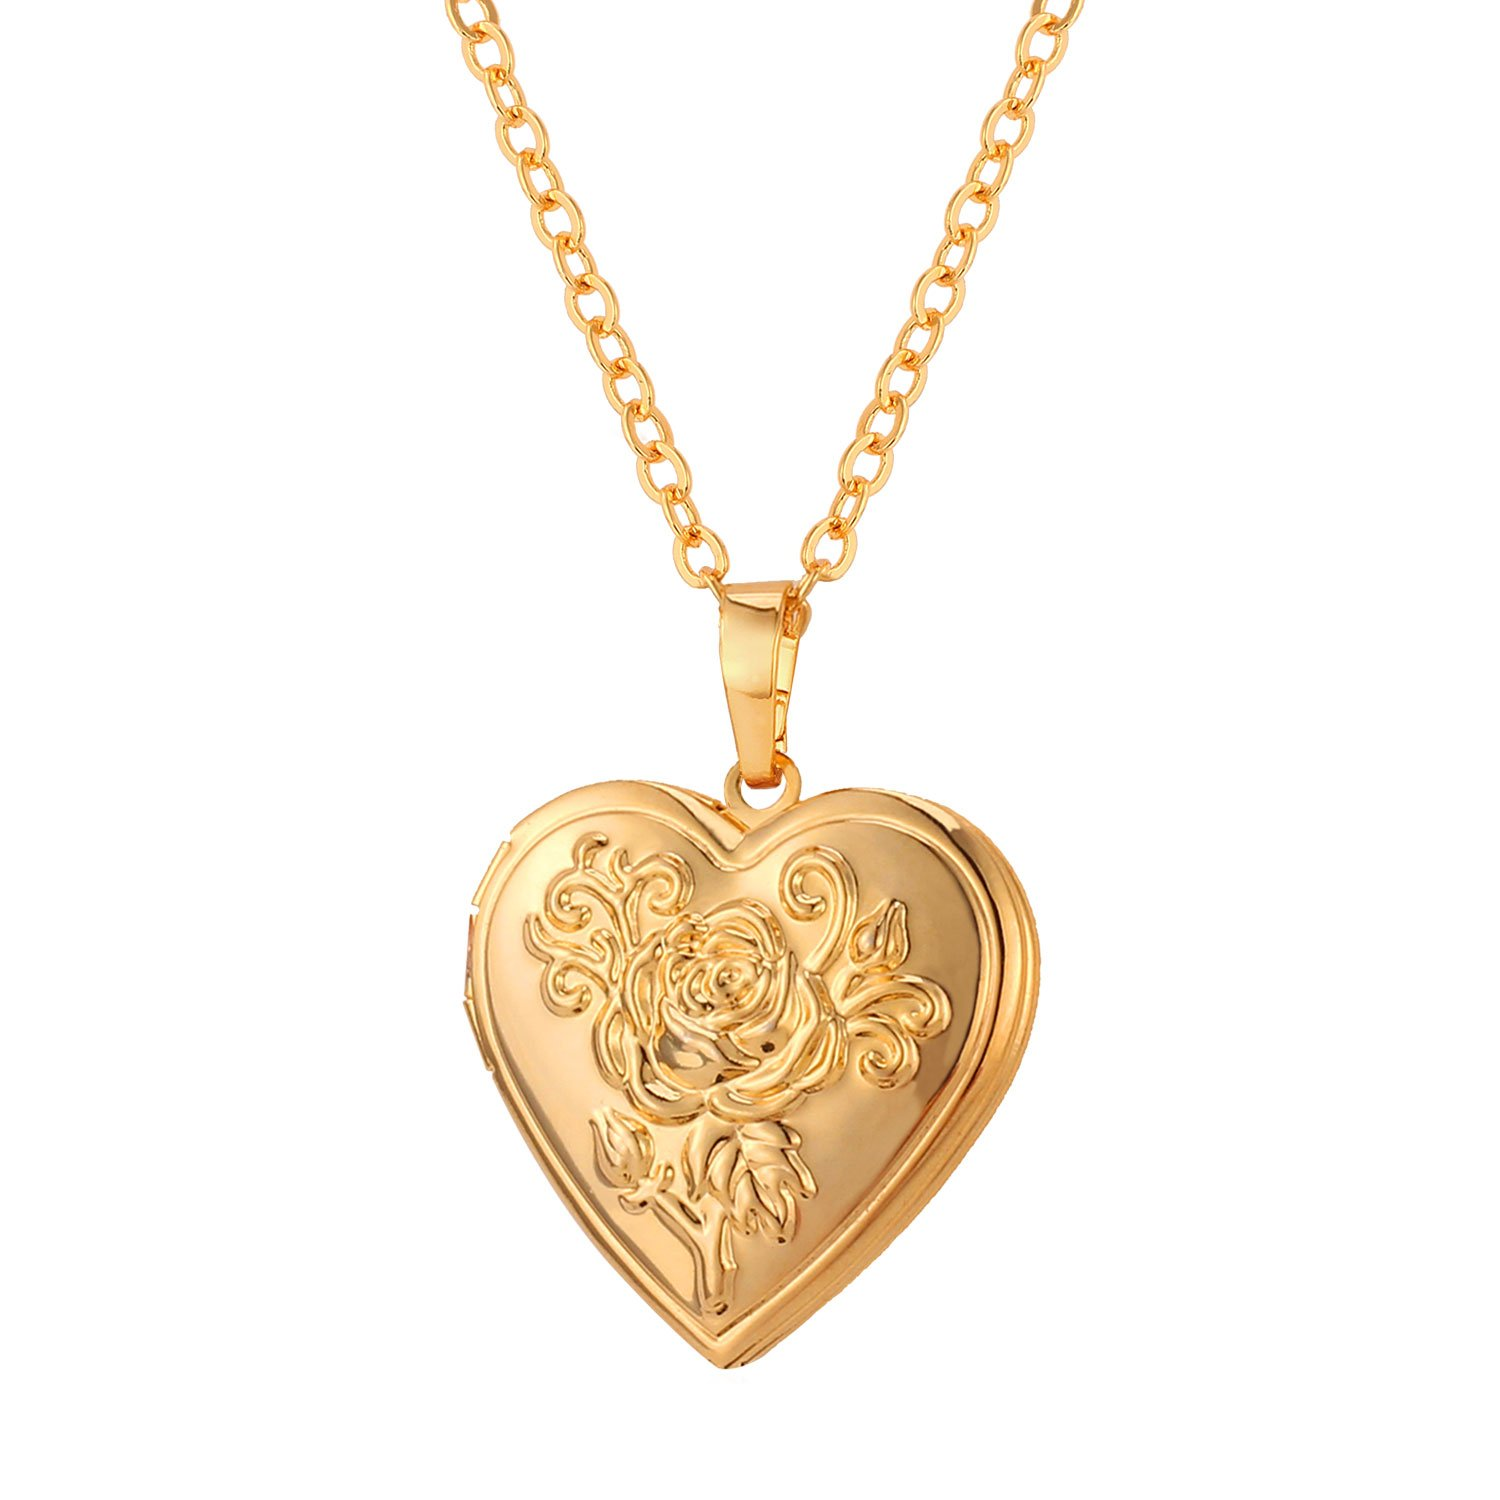 prints with silver cross necklace uk jewellery plated displayed from a locket chain animal paw lockets shaped gold the co heart cm dp blue charity amazon